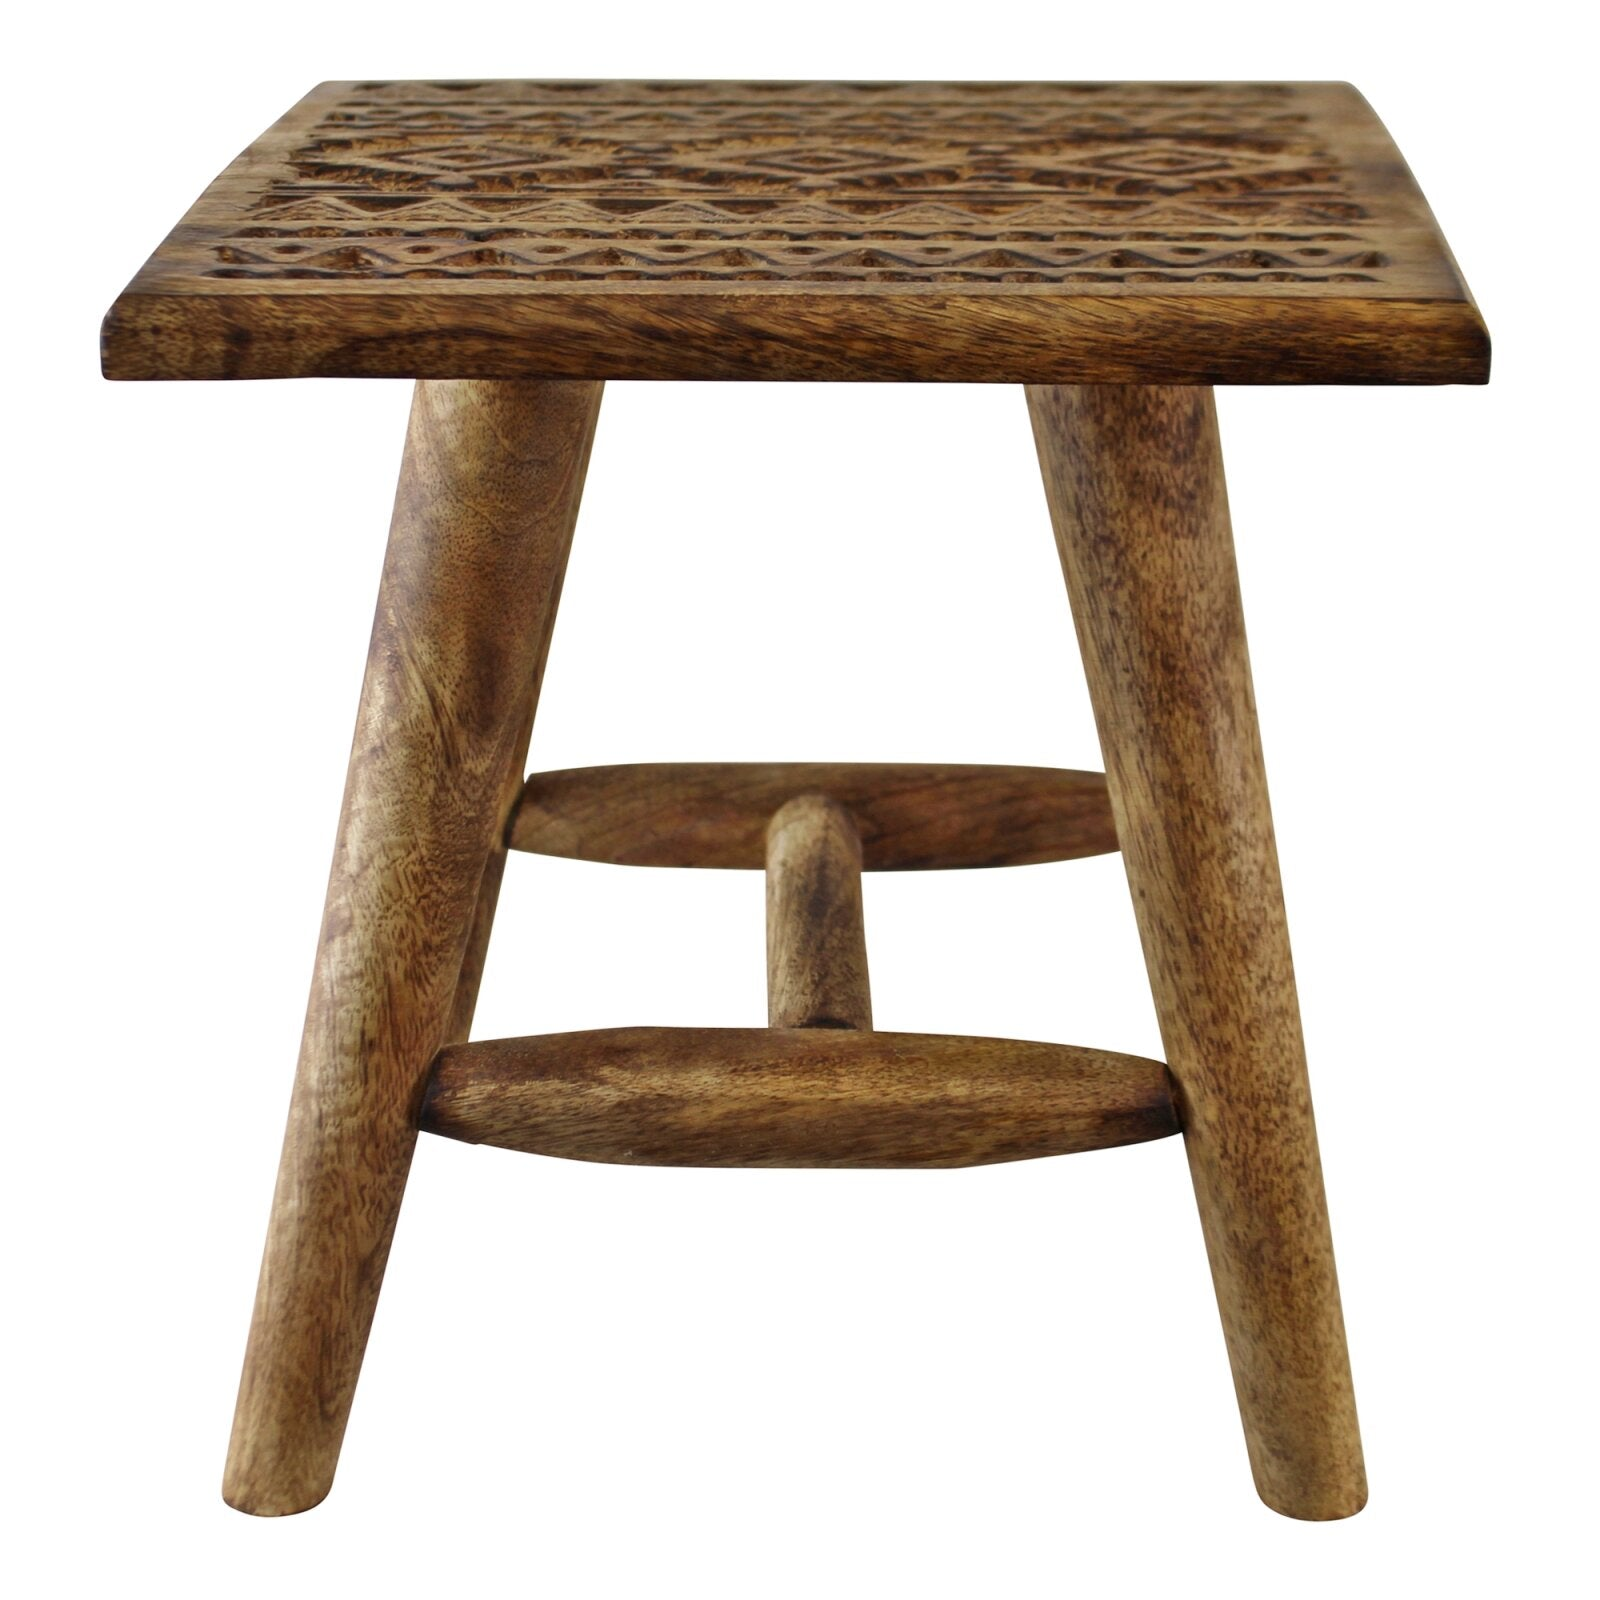 Kasbah Design Small, Hand Carved Wooden Stool, Furniture by Low Cost Gifts